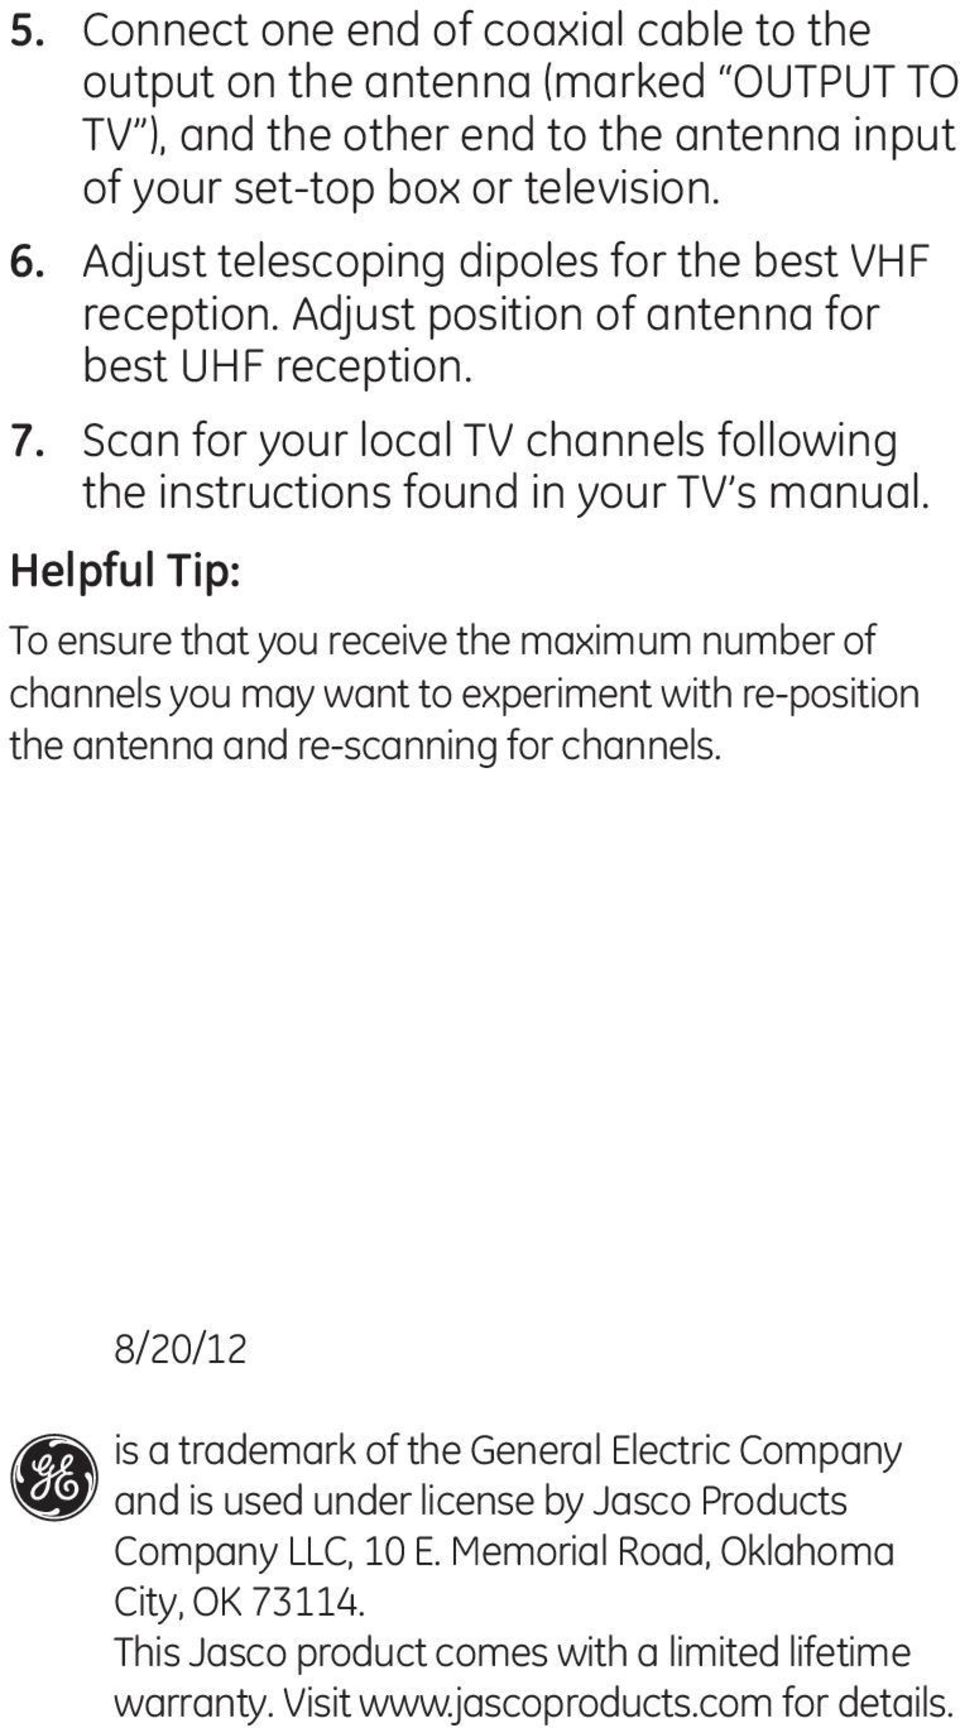 Helpful Tip: To ensure that you receive the maximum number of channels you may want to experiment with re-position the antenna and re-scanning for channels.